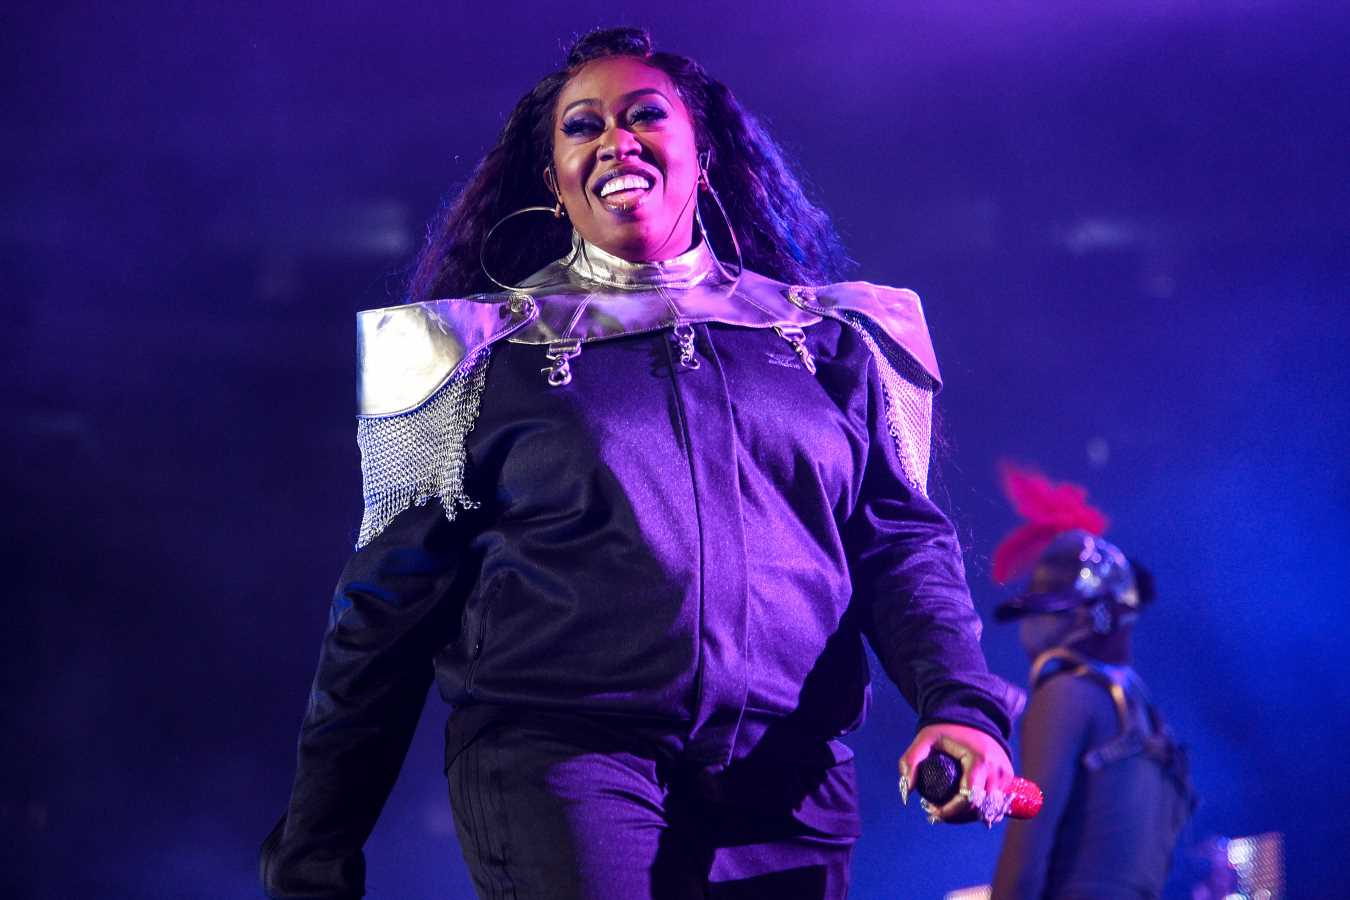 Missy Elliott Reveals She's Dropping Surprise Album 'Iconology' at Midnight in Advance of VMAs